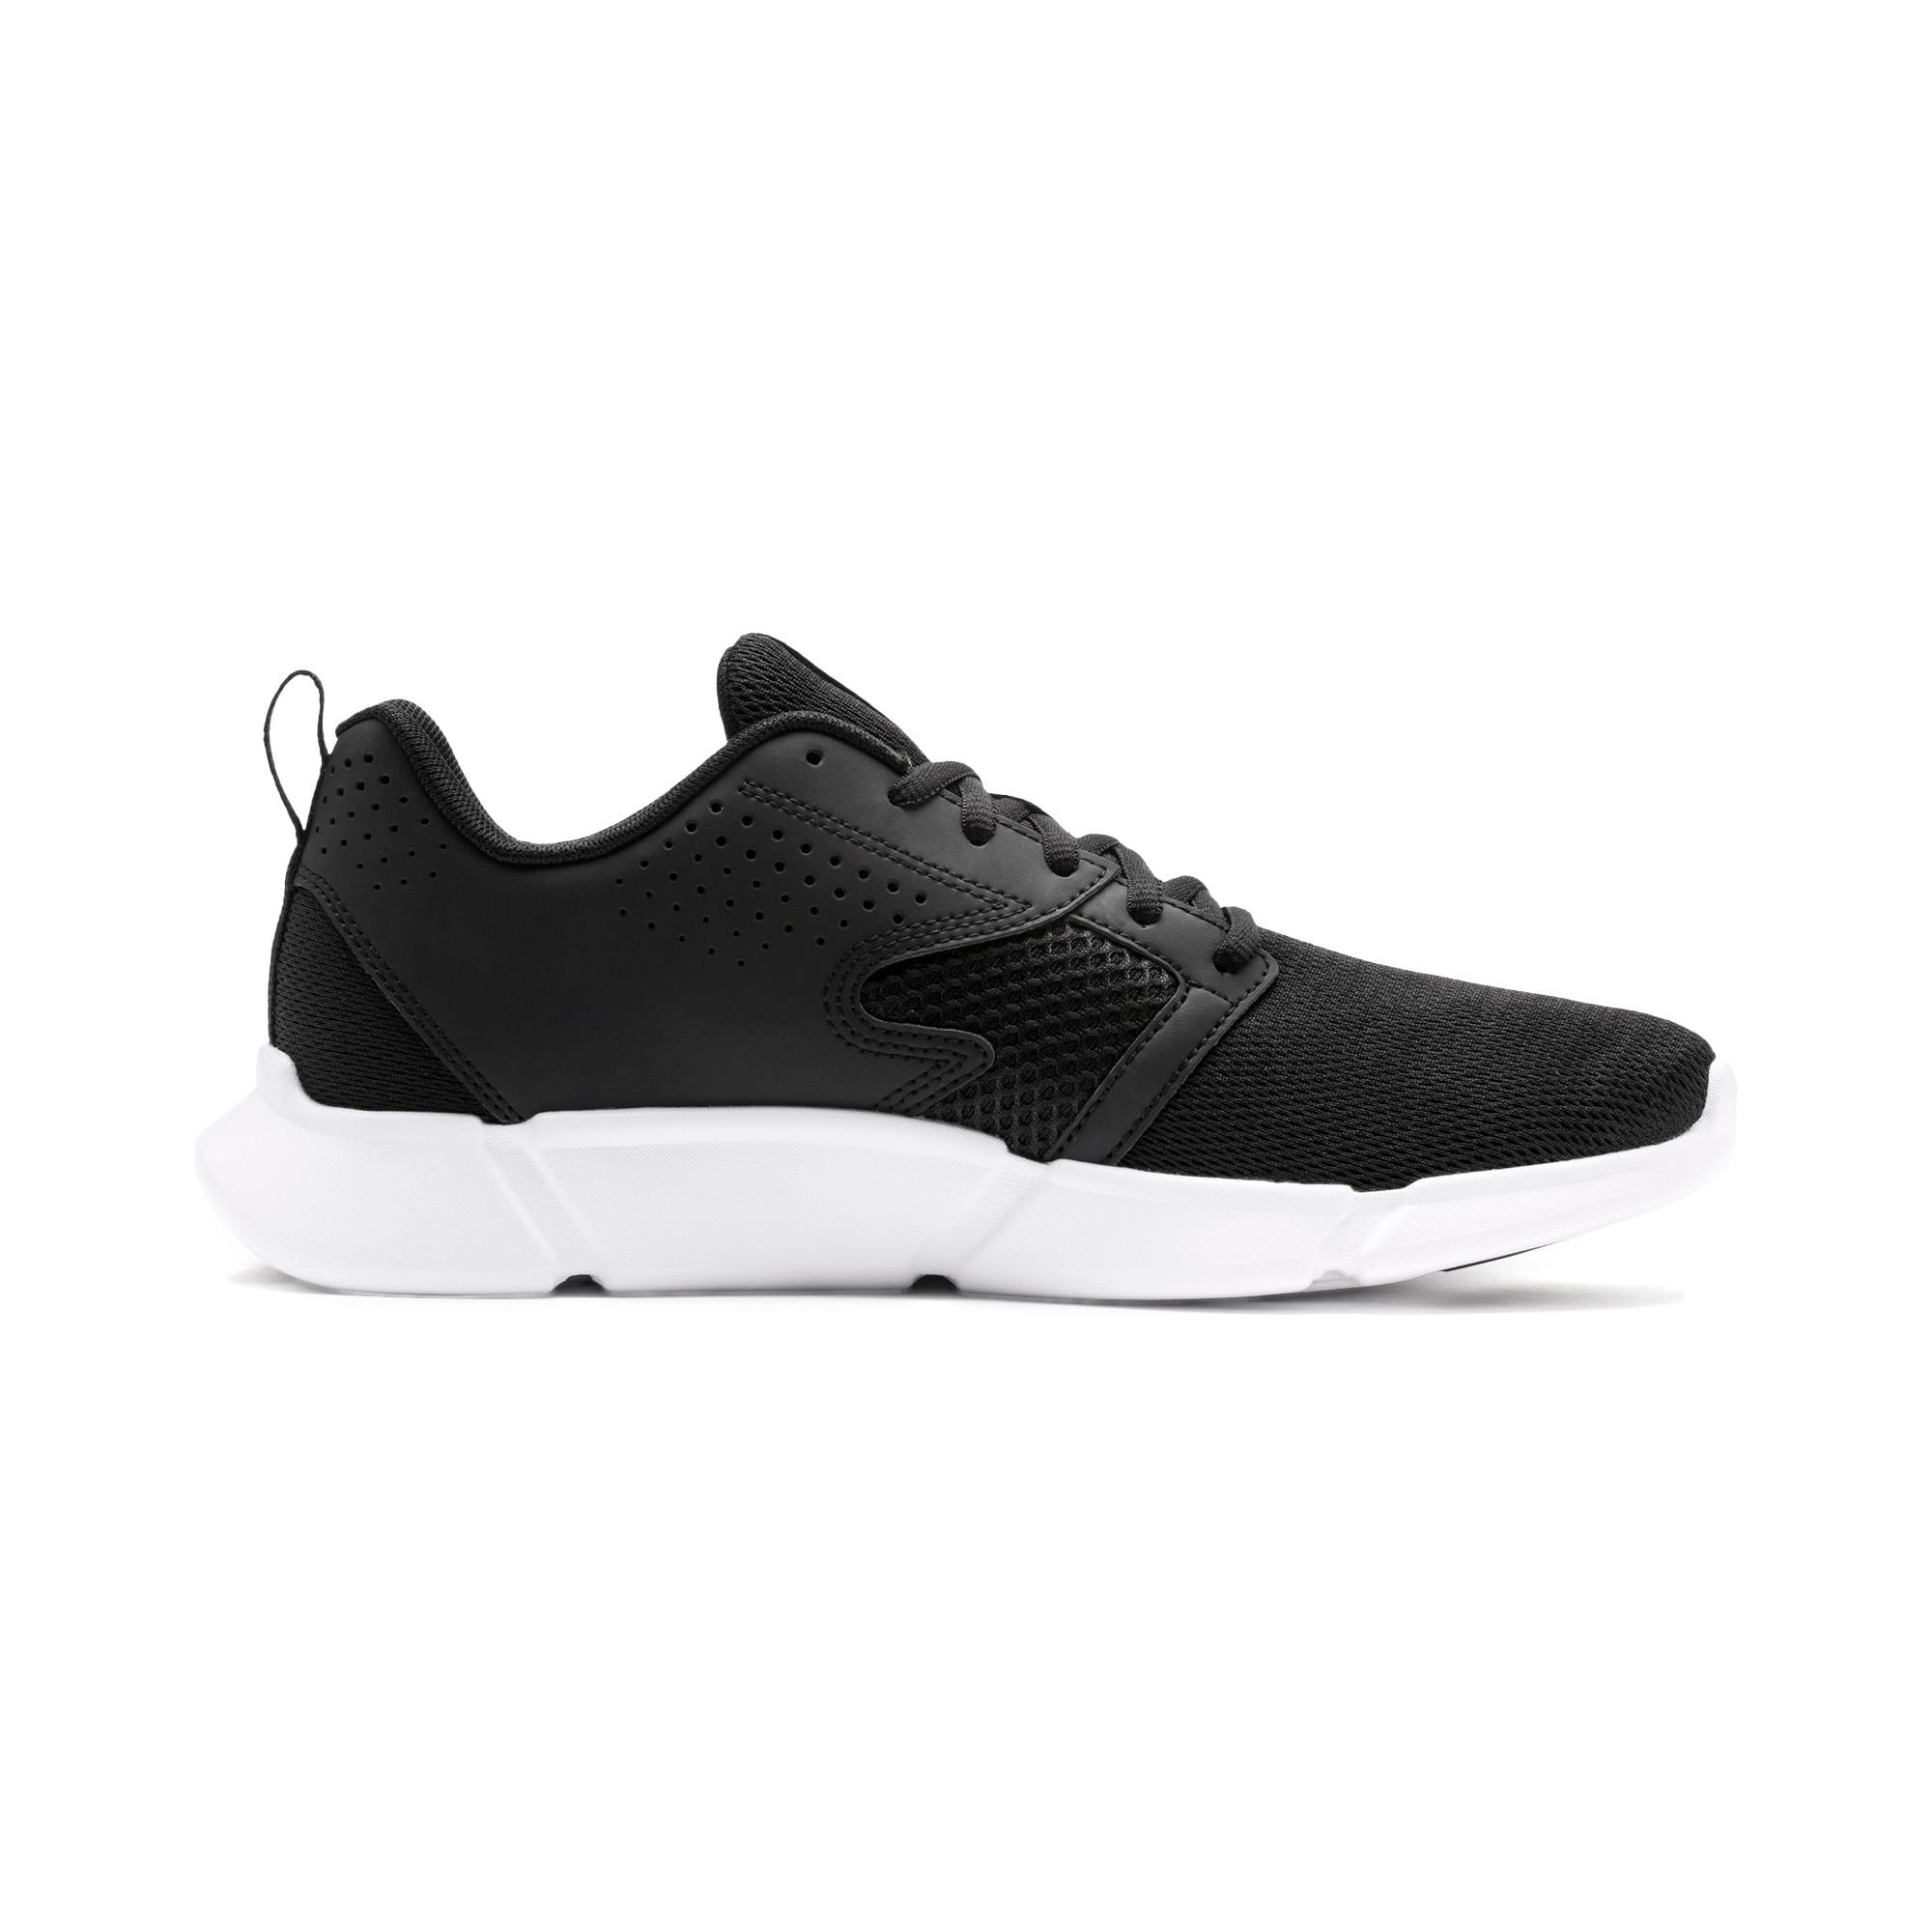 Thumbnail 6 of INTERFLEX Modern Sneakers, Puma Black-Puma White, medium